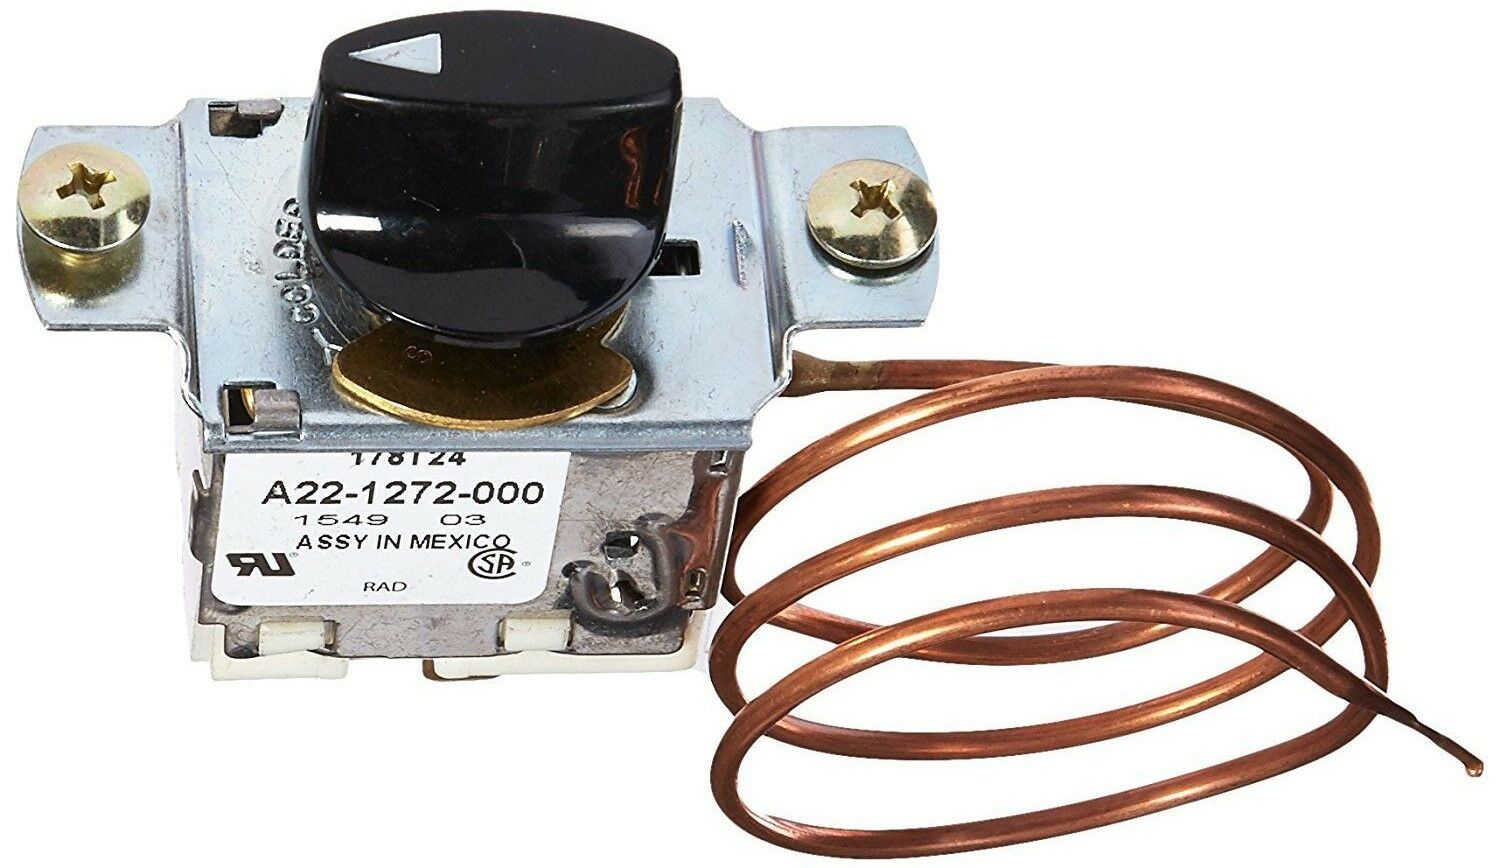 Intermatic 178T24 Freeze Protection Thermostat Control Fits FP1102T - PF1103T